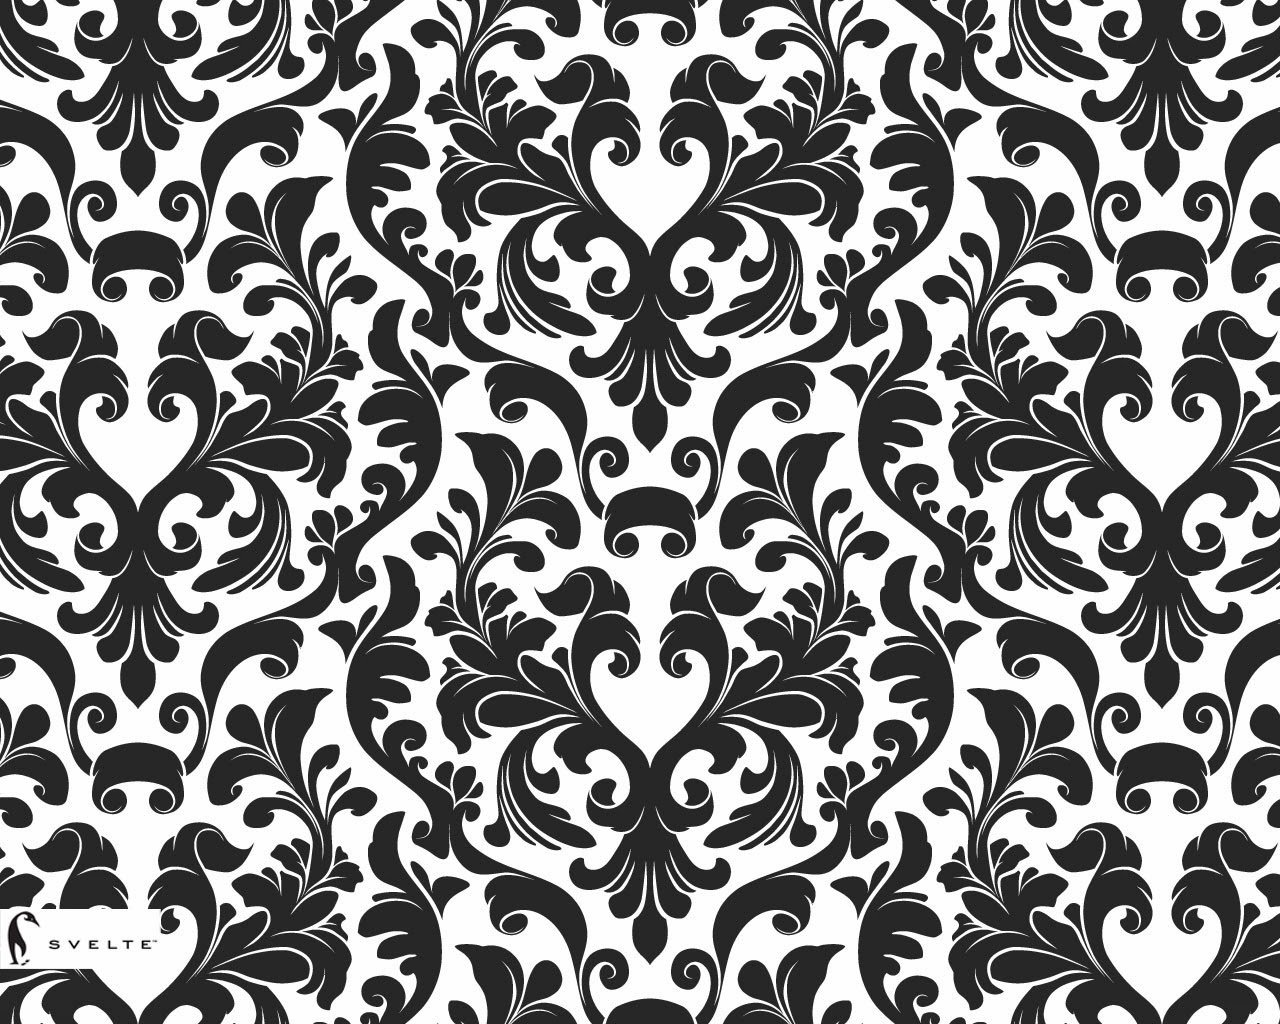 wallpaper black and white damask wallpaper black and white damask 1280x1024